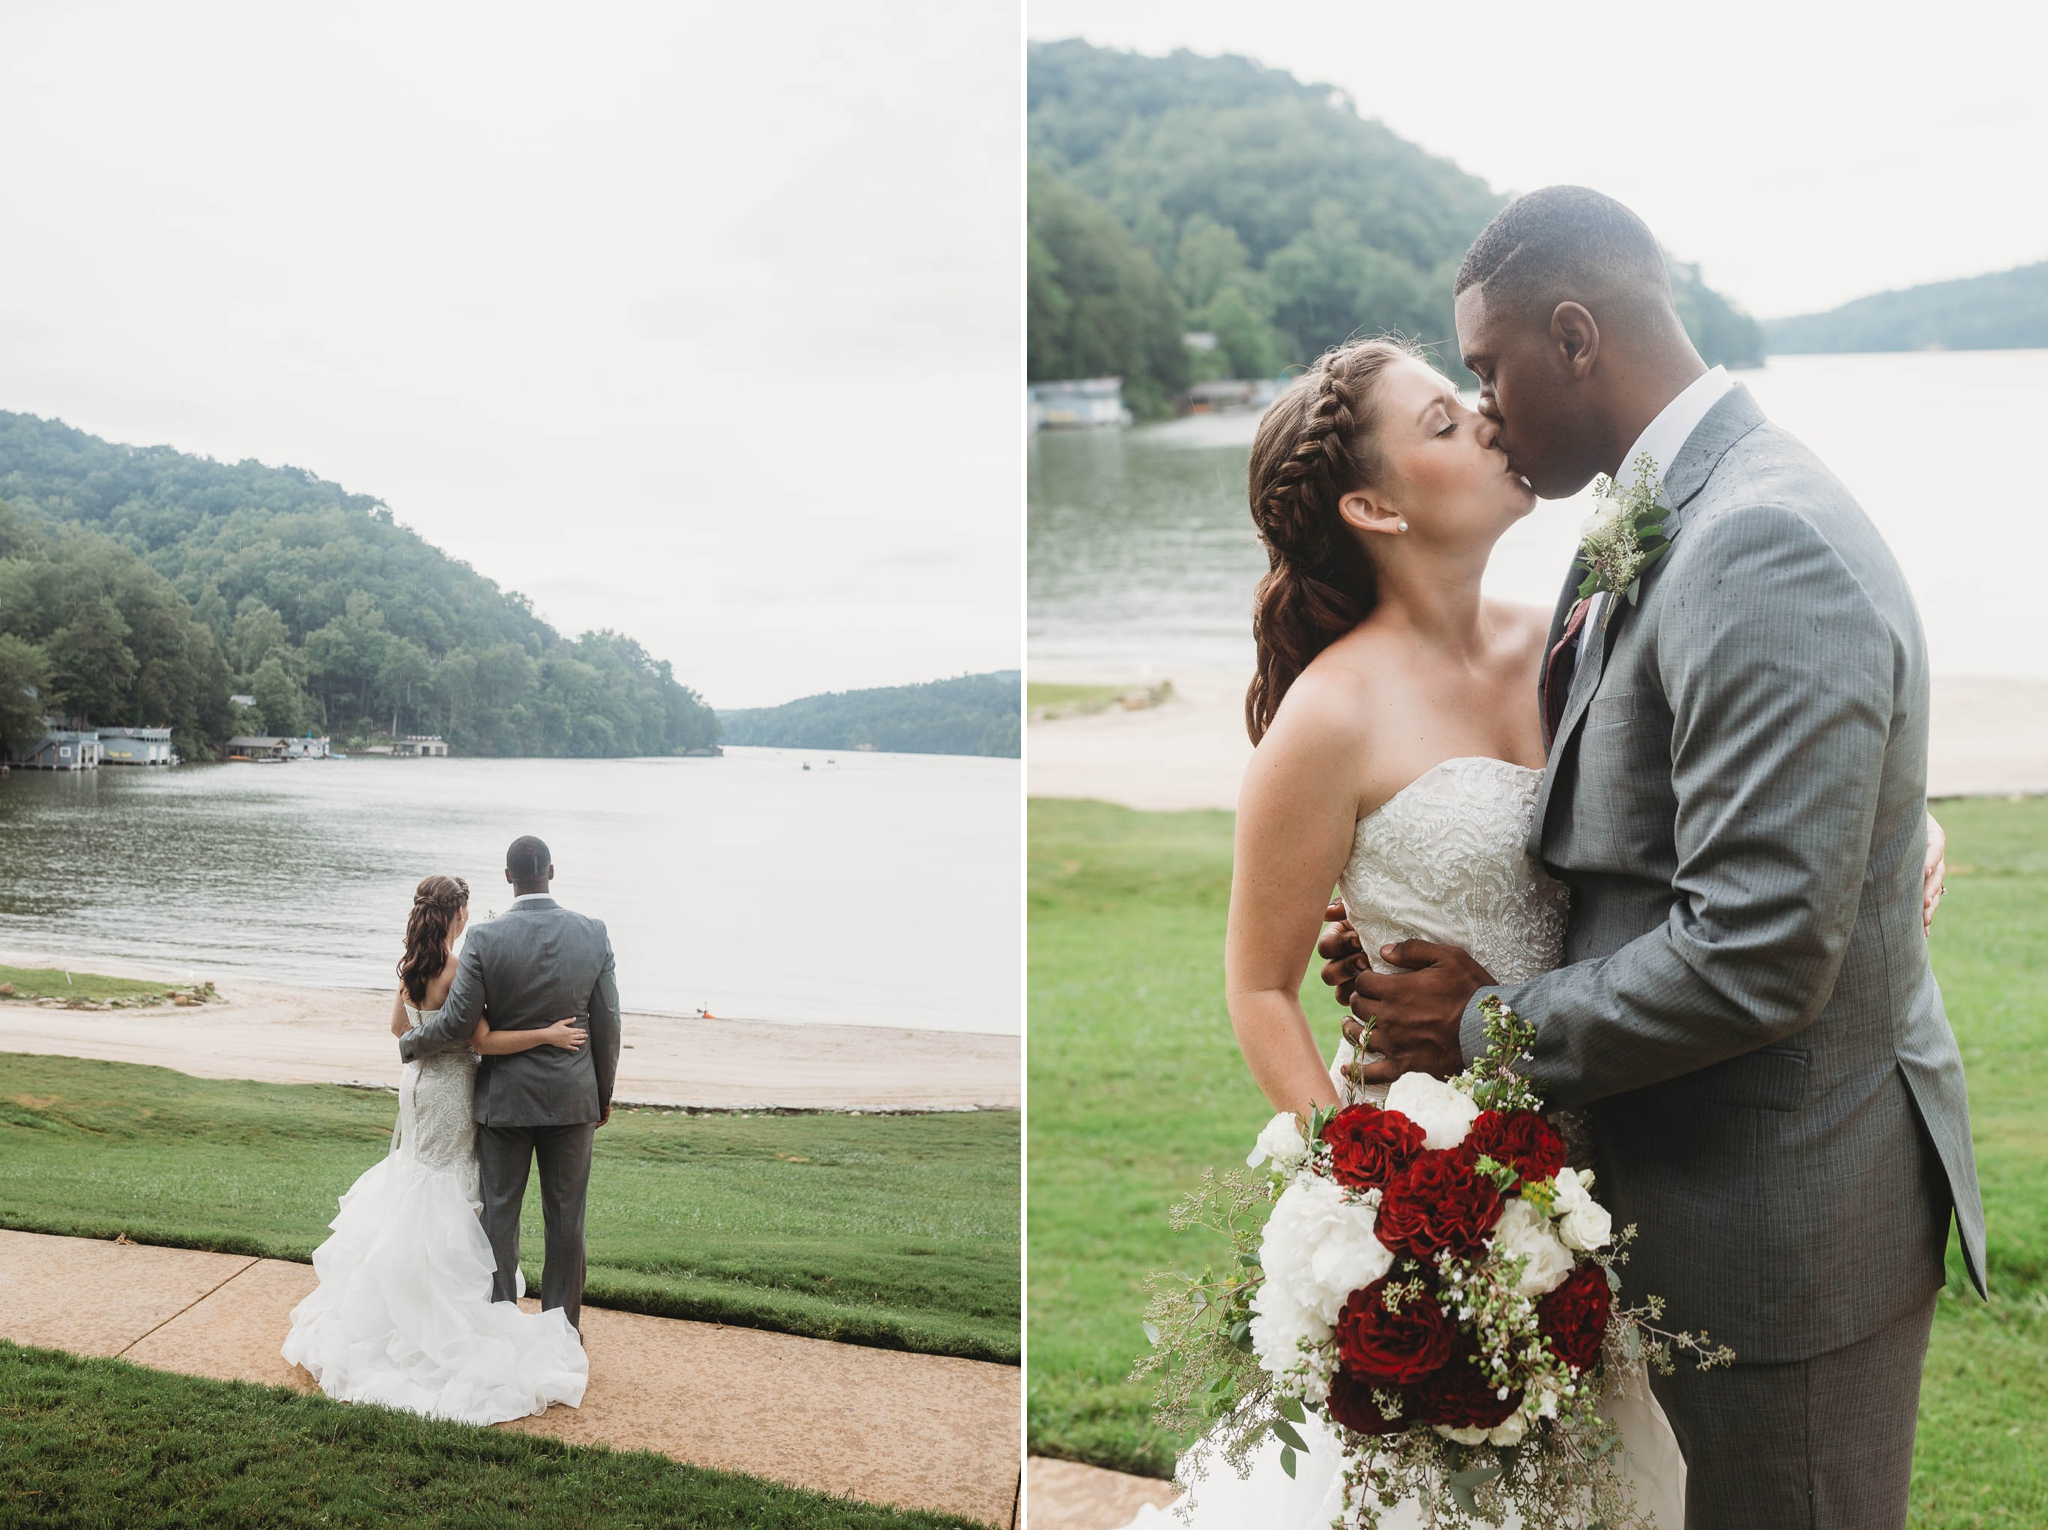 Bride and Groom Portraits - Rachel + Jamison - Rumbling Bald Resort, Lake Lure, NC - Asheville, North Carolina Wedding Photographer